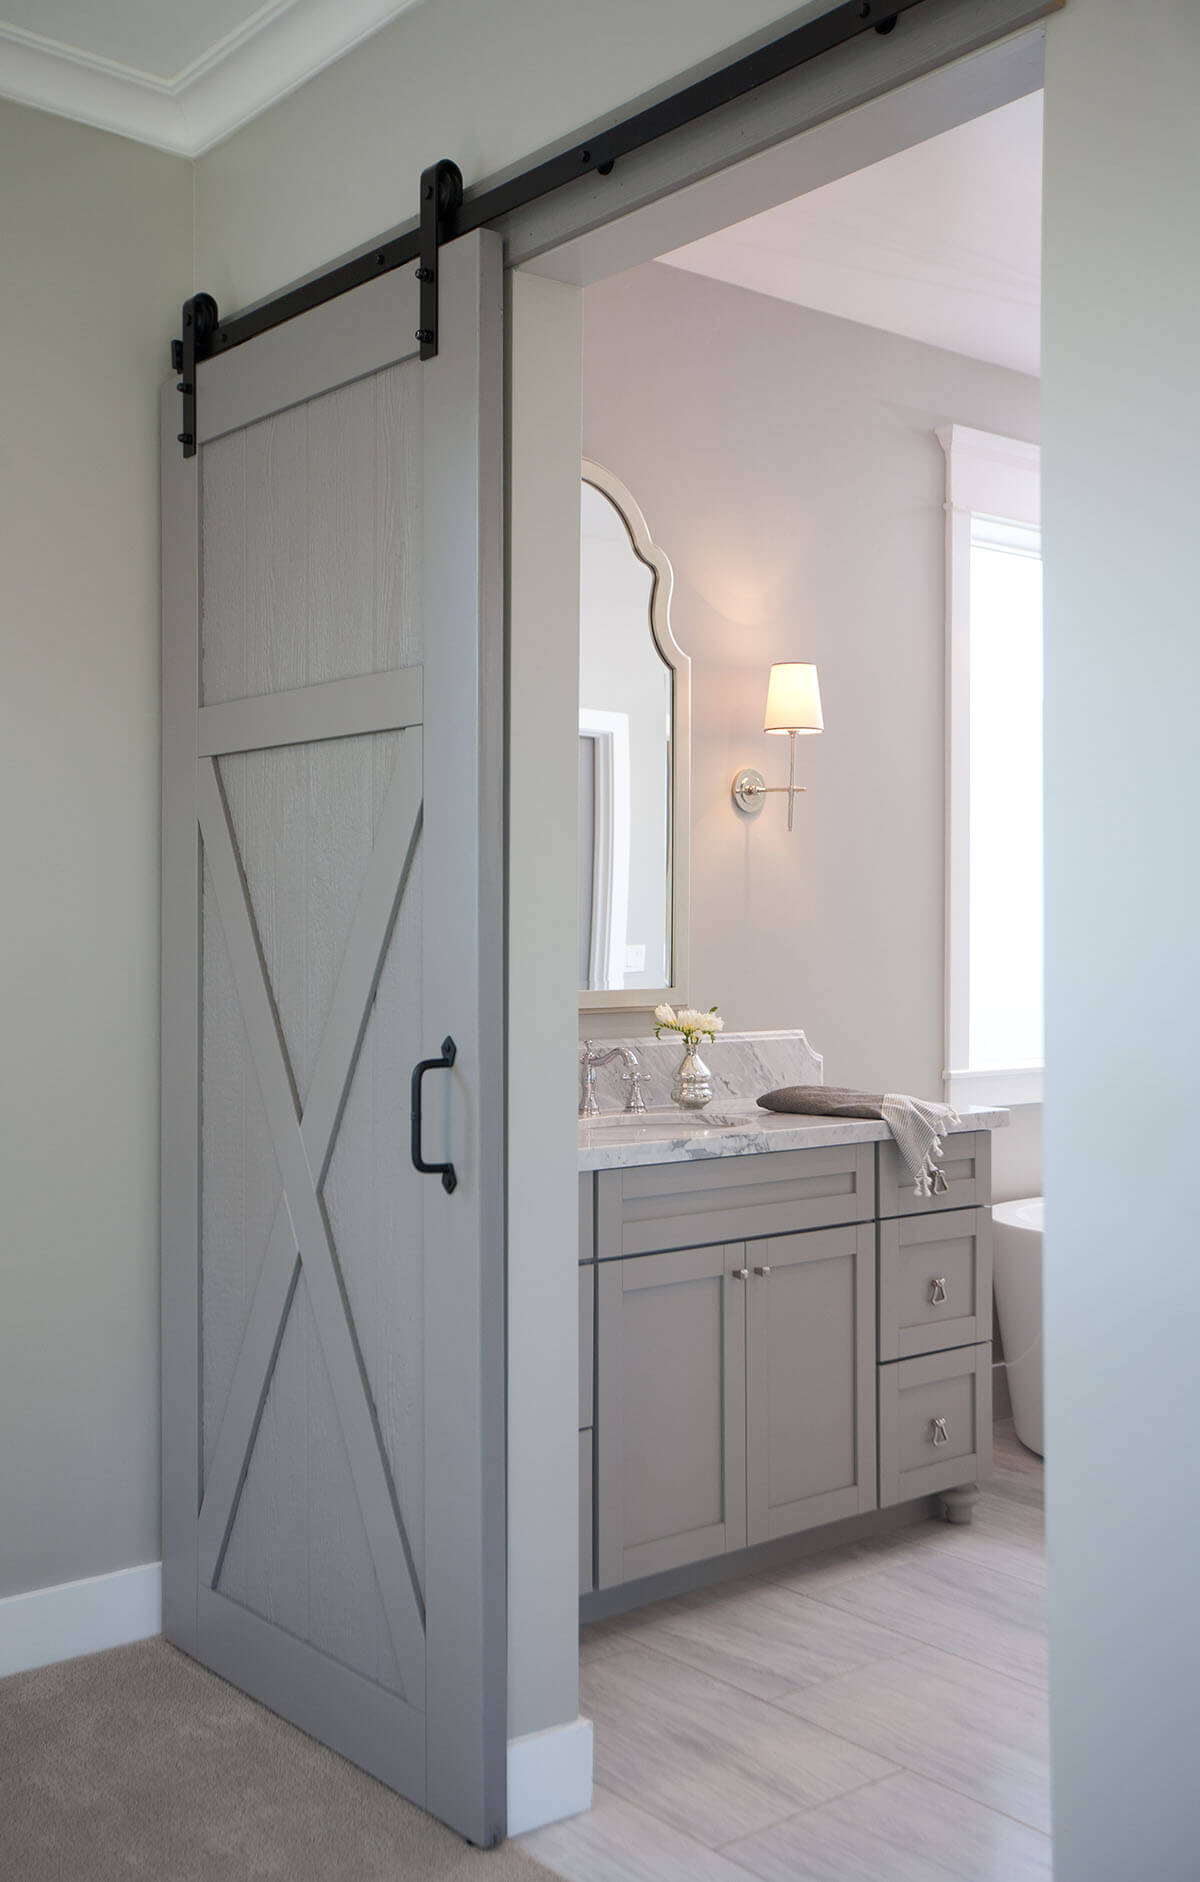 29 Best Sliding Barn Door Ideas and Designs for 2018 Sliding Door For Bathroom on accordion door for bathroom, aluminum door for bathroom, exterior door for bathroom, aluminium doors for bathroom, roll up door for bathroom, double door for bathroom, pocket door for bathroom, pantry for bathroom, interior sliding barn door bathroom, folding door for bathroom, sliding bathroom doors design, rustic barn door bathroom, solar tube for bathroom, french doors for bathroom, slide doors for bathroom, indoor jacuzzi for bathroom, industrial design house bathroom, bifold door for bathroom, back door for bathroom, swinging door for bathroom,